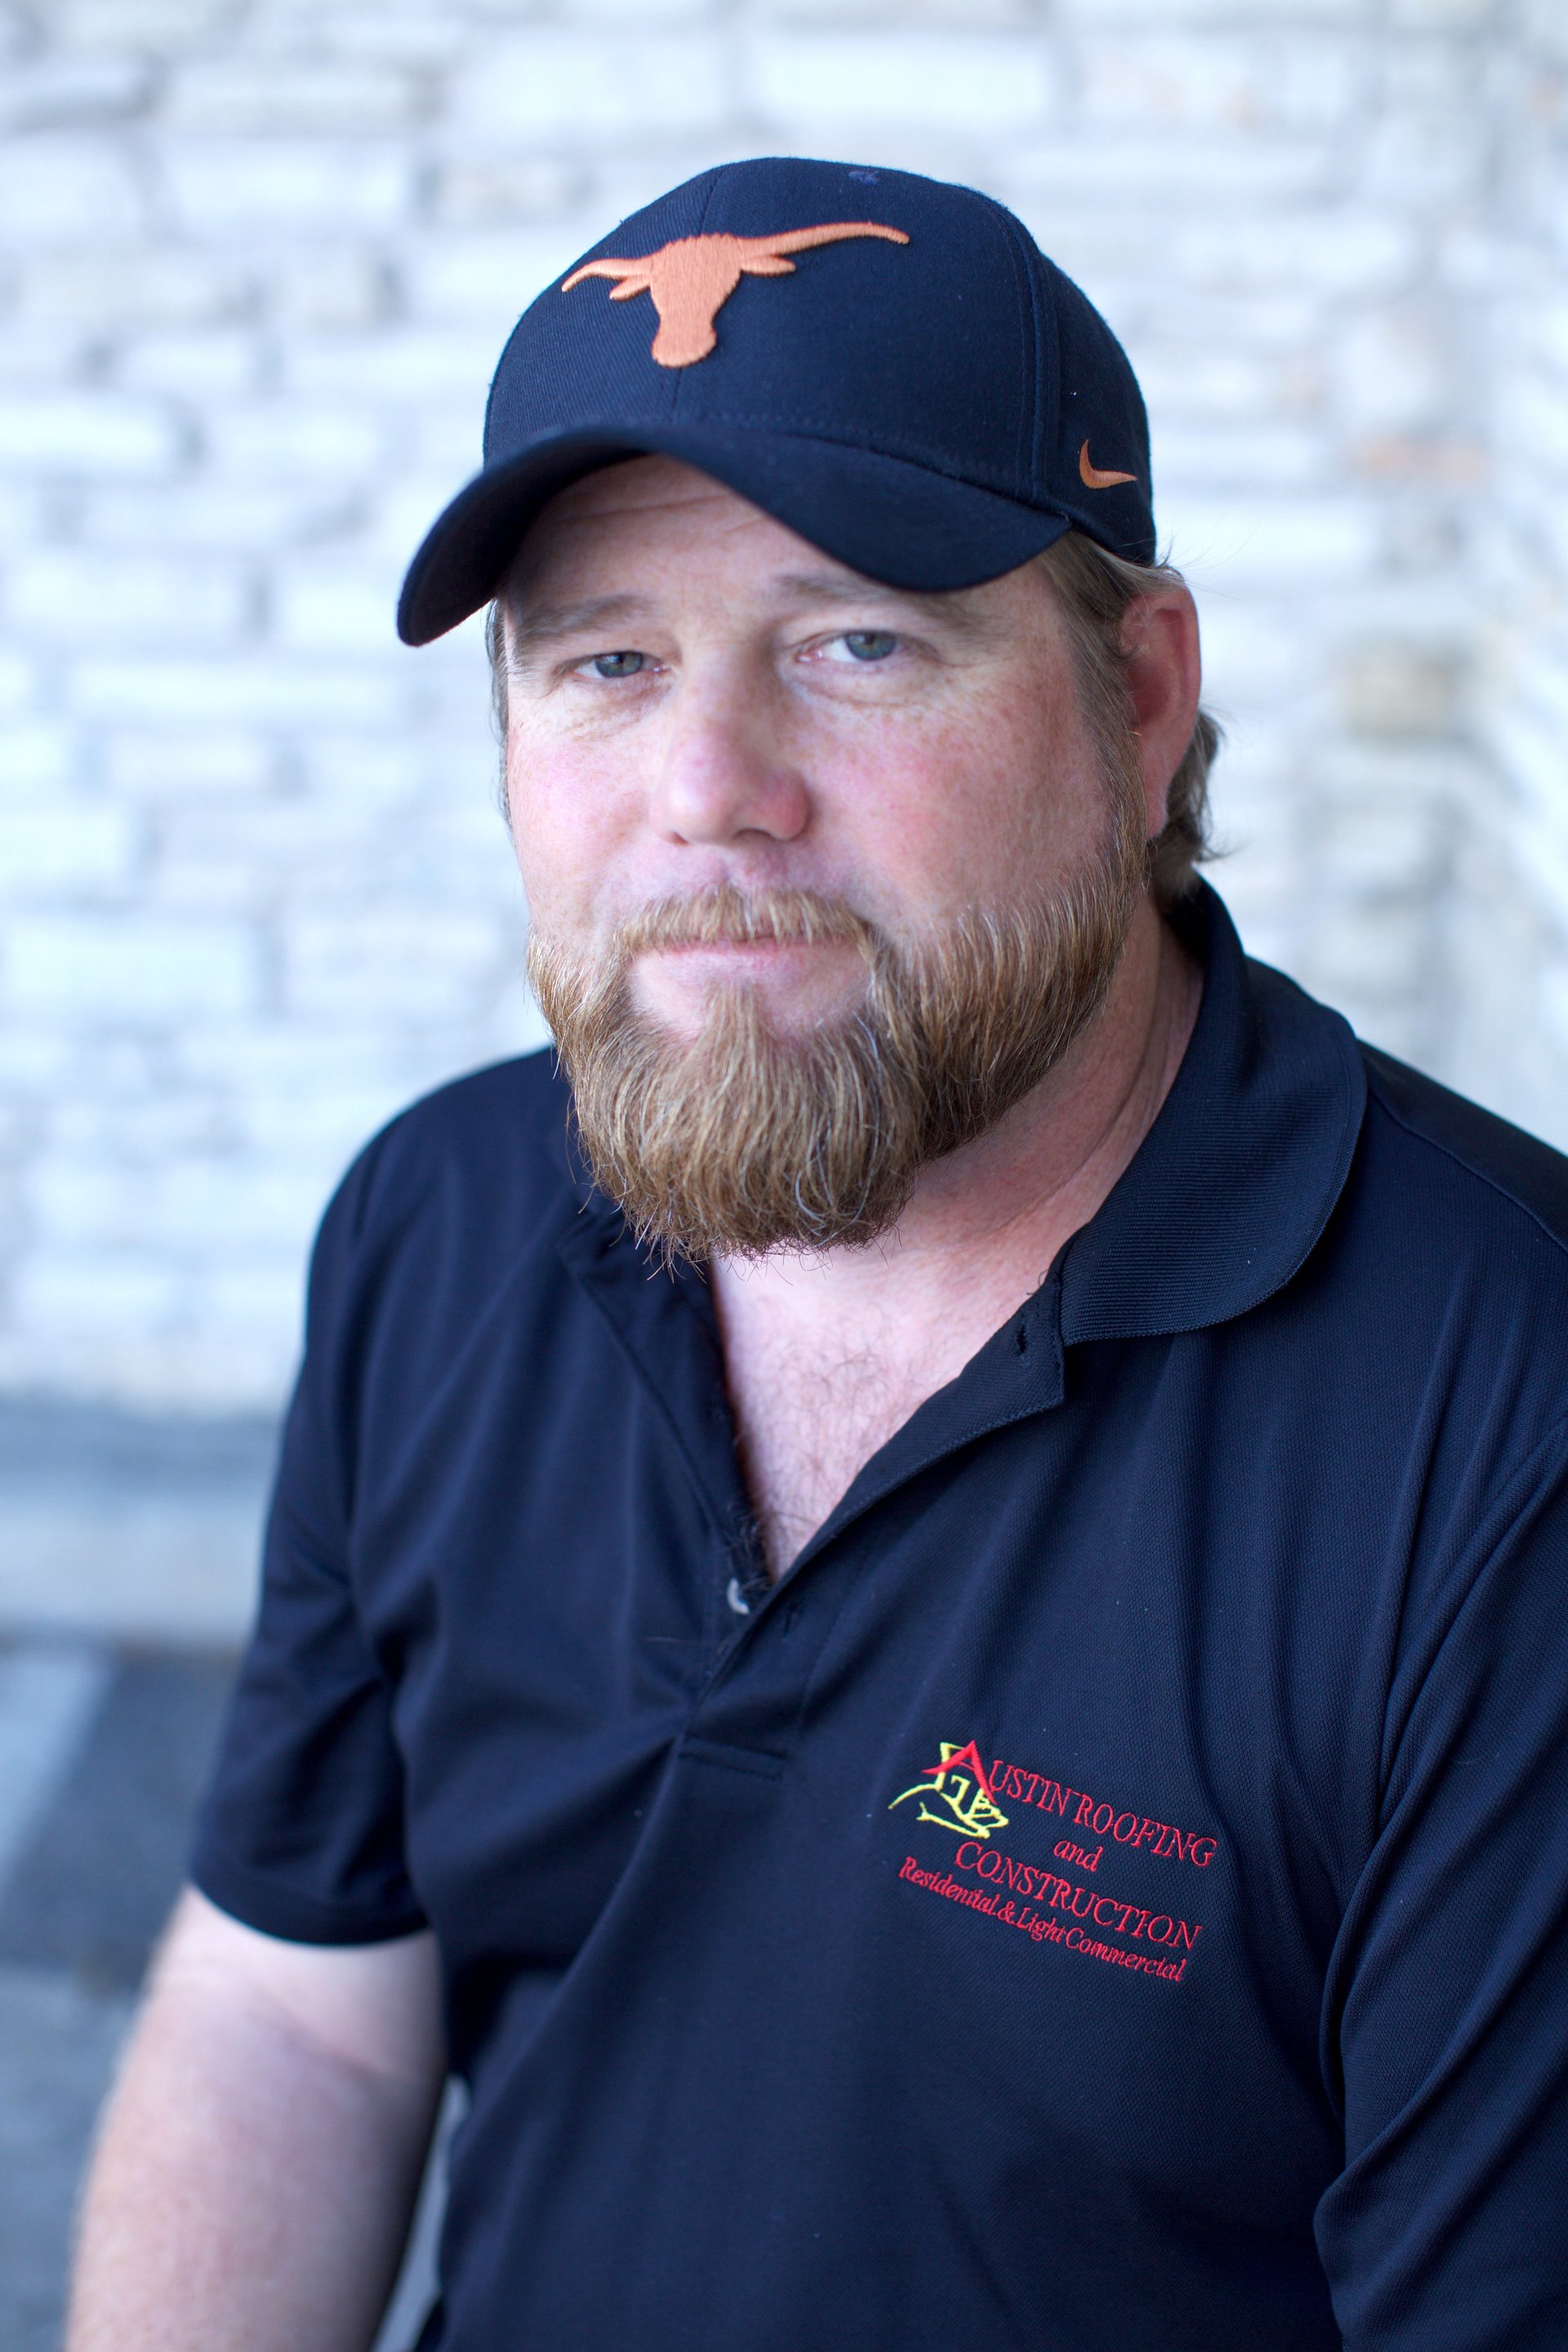 Tim Bowen - Jefe - Austin Roofing and Construction